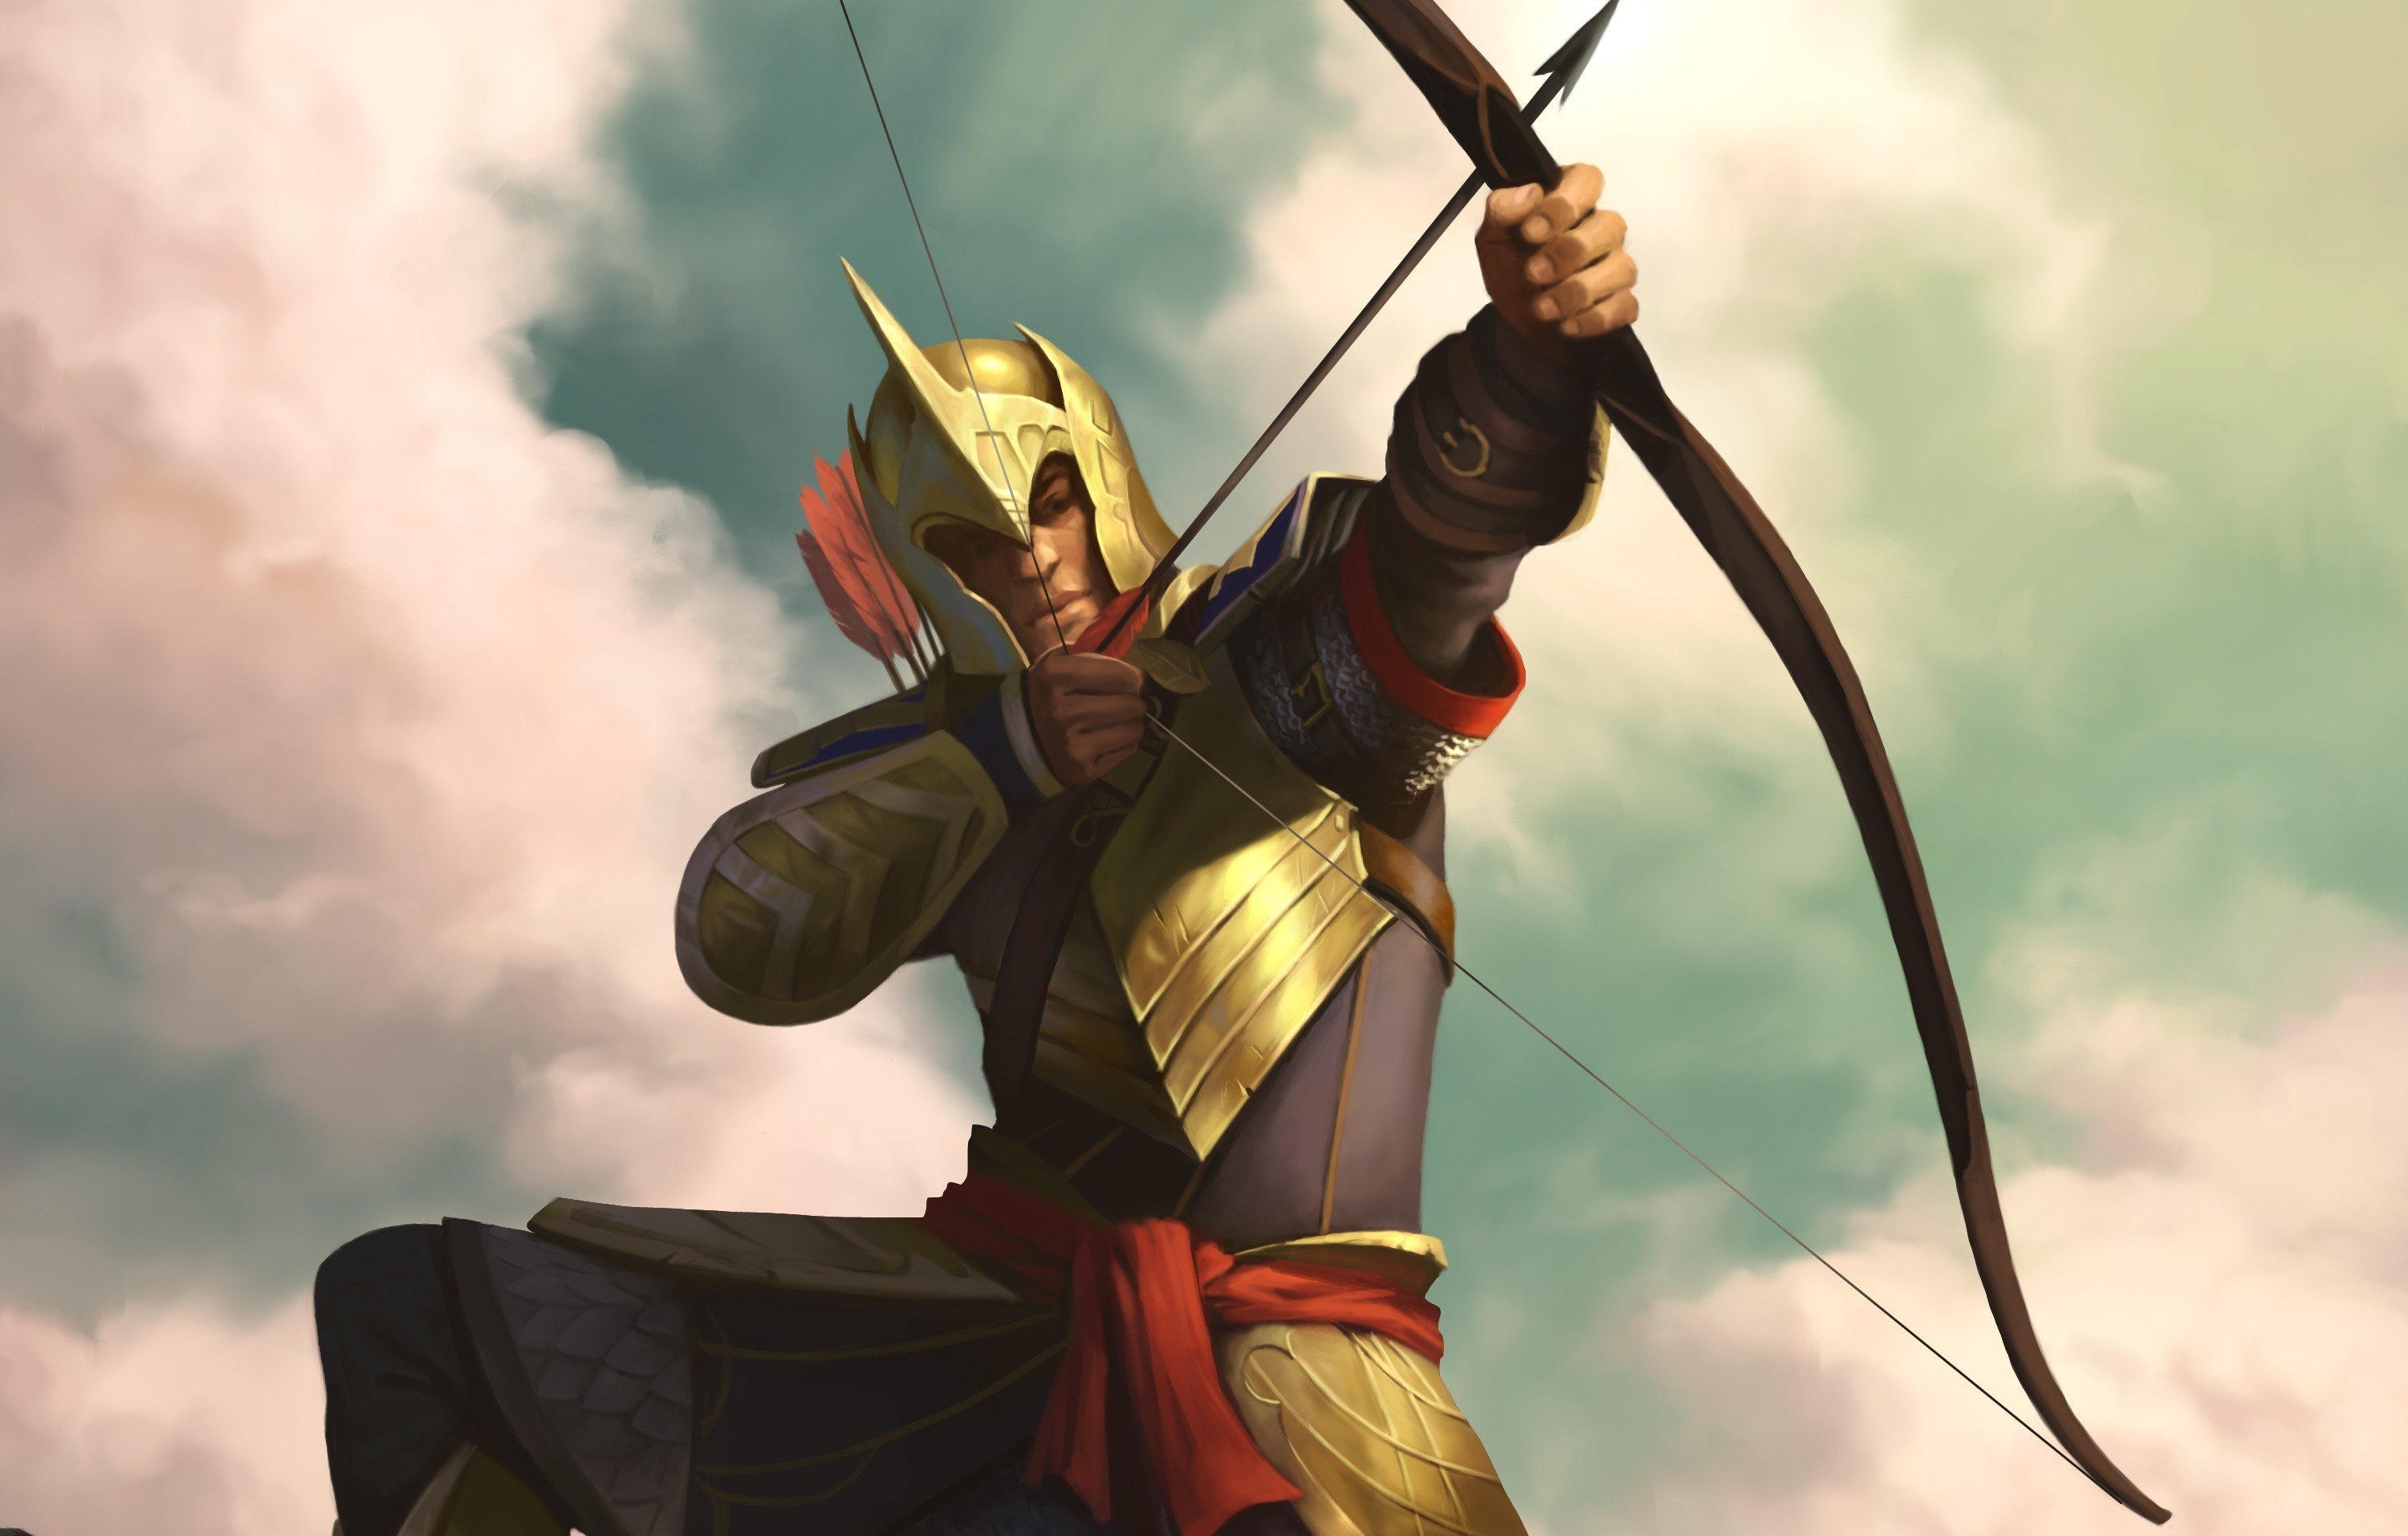 3000x1914 archer load bow man free hd wallpaper